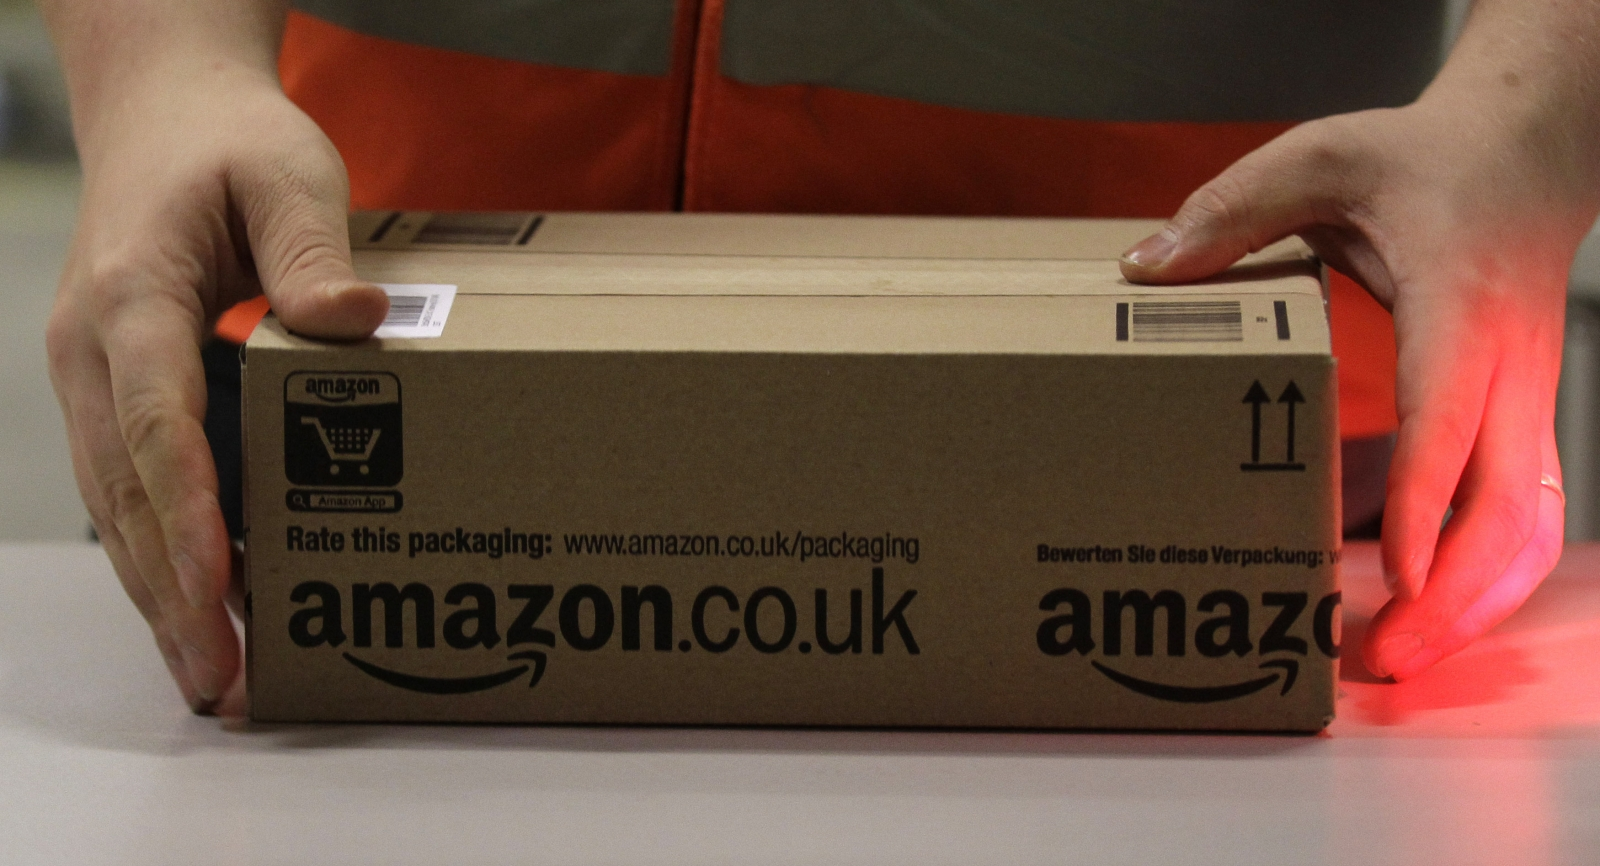 A package sent out from Amazon UK